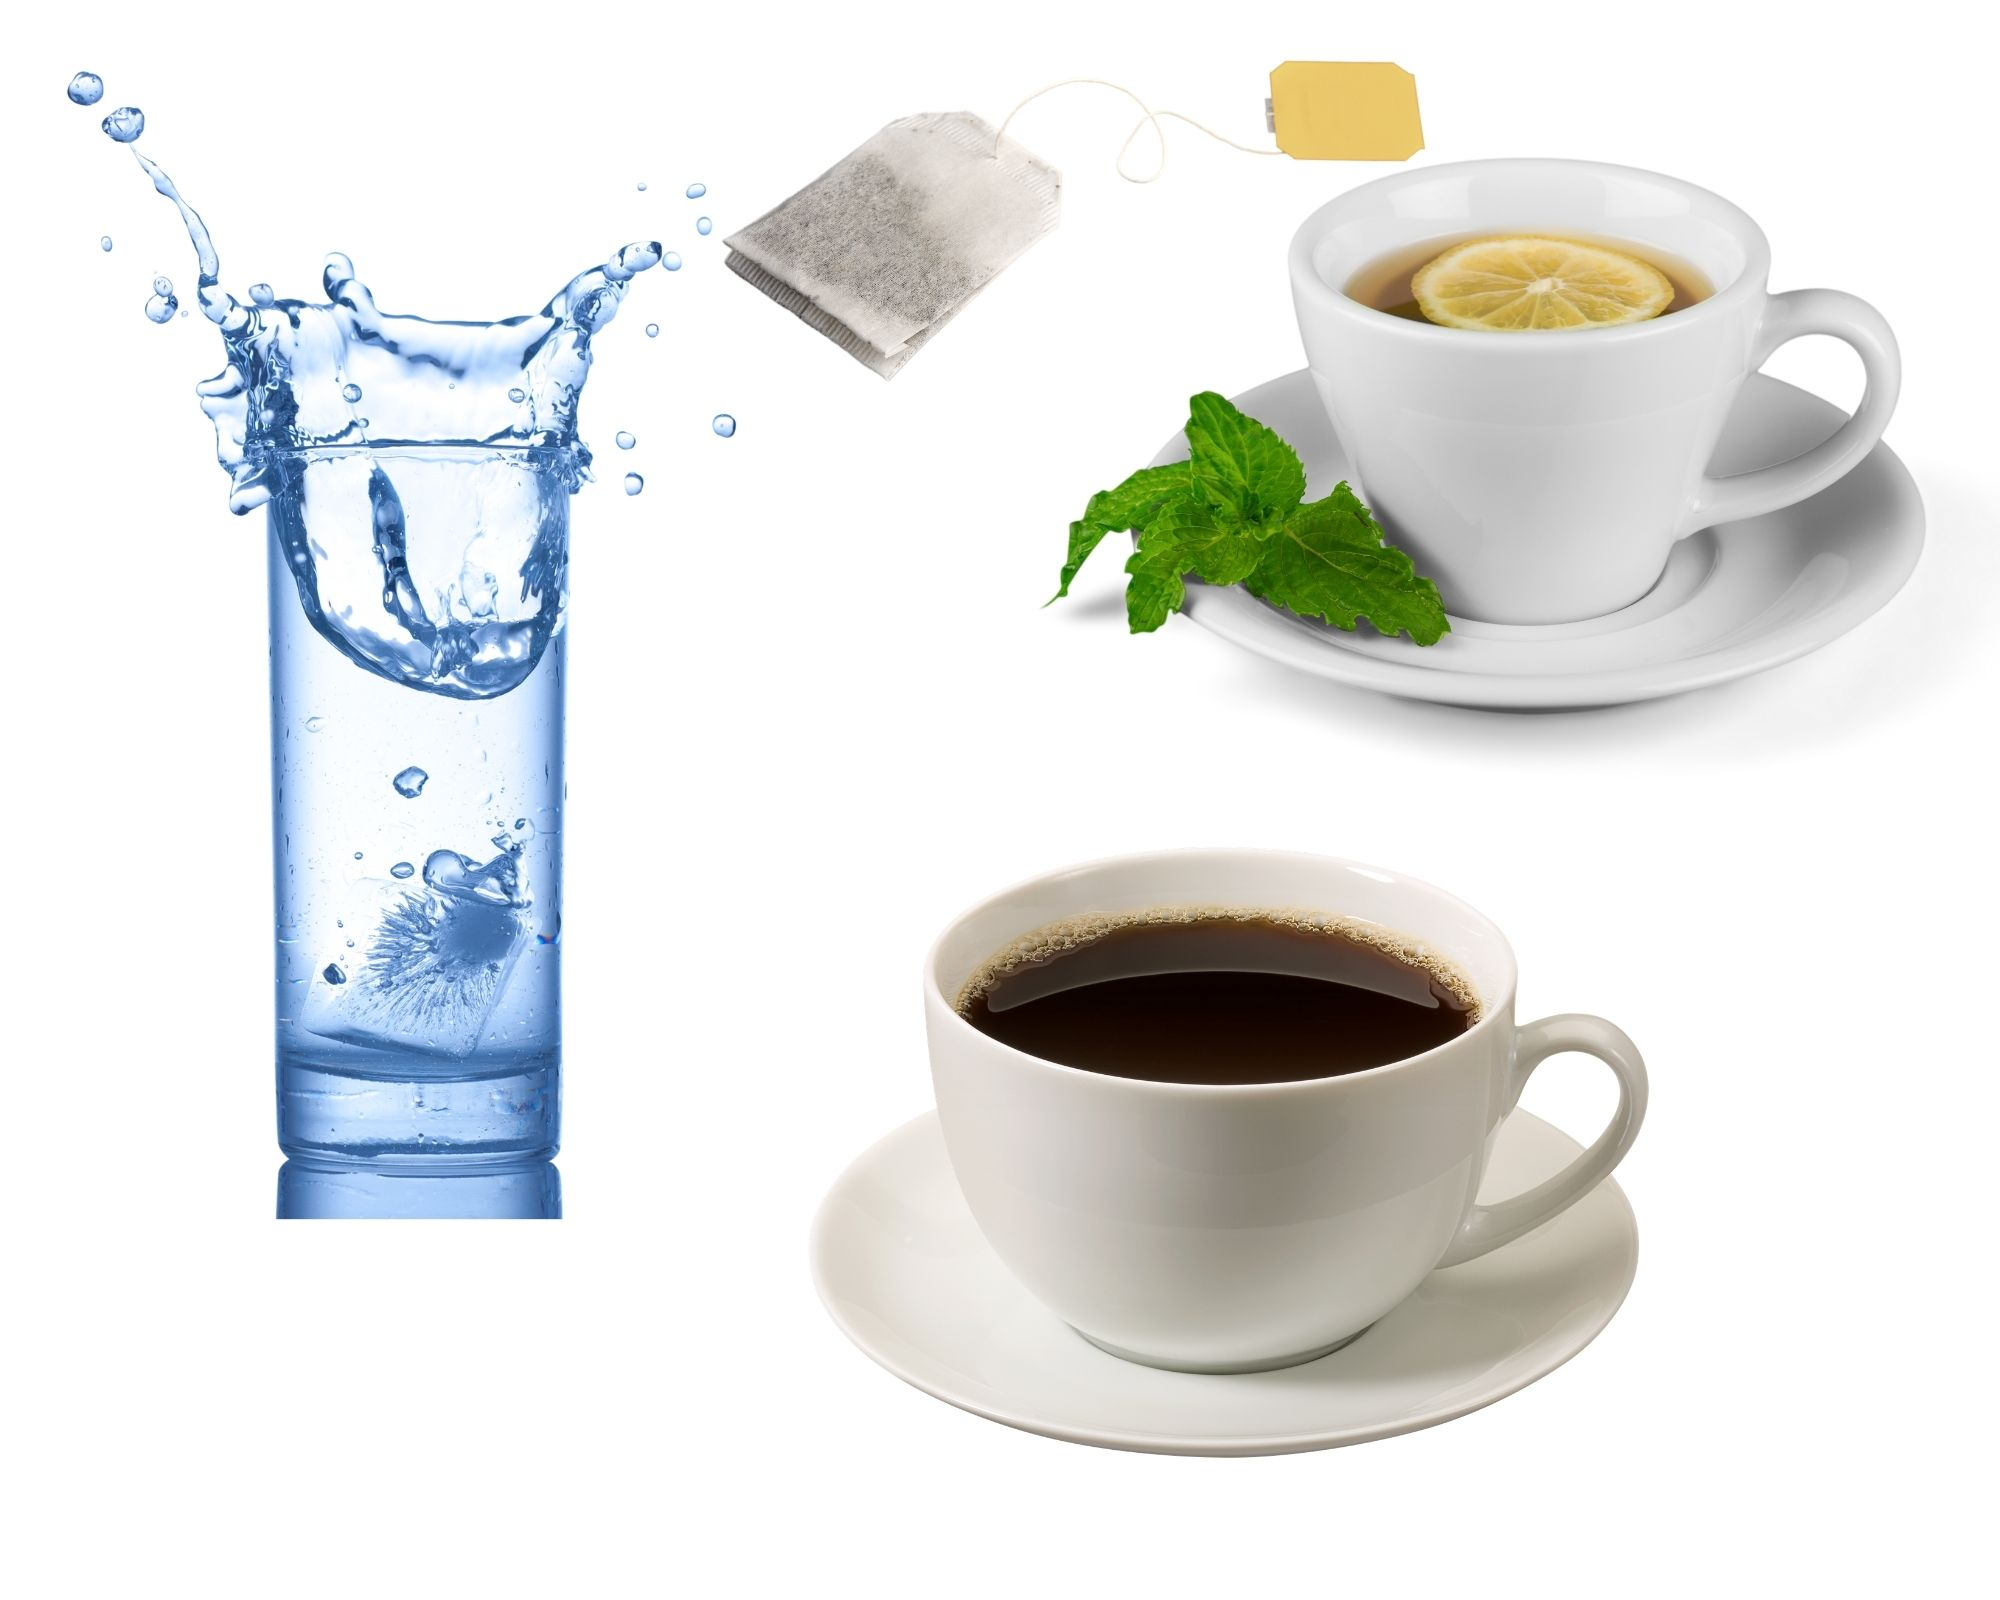 Water, Tea, and Coffee